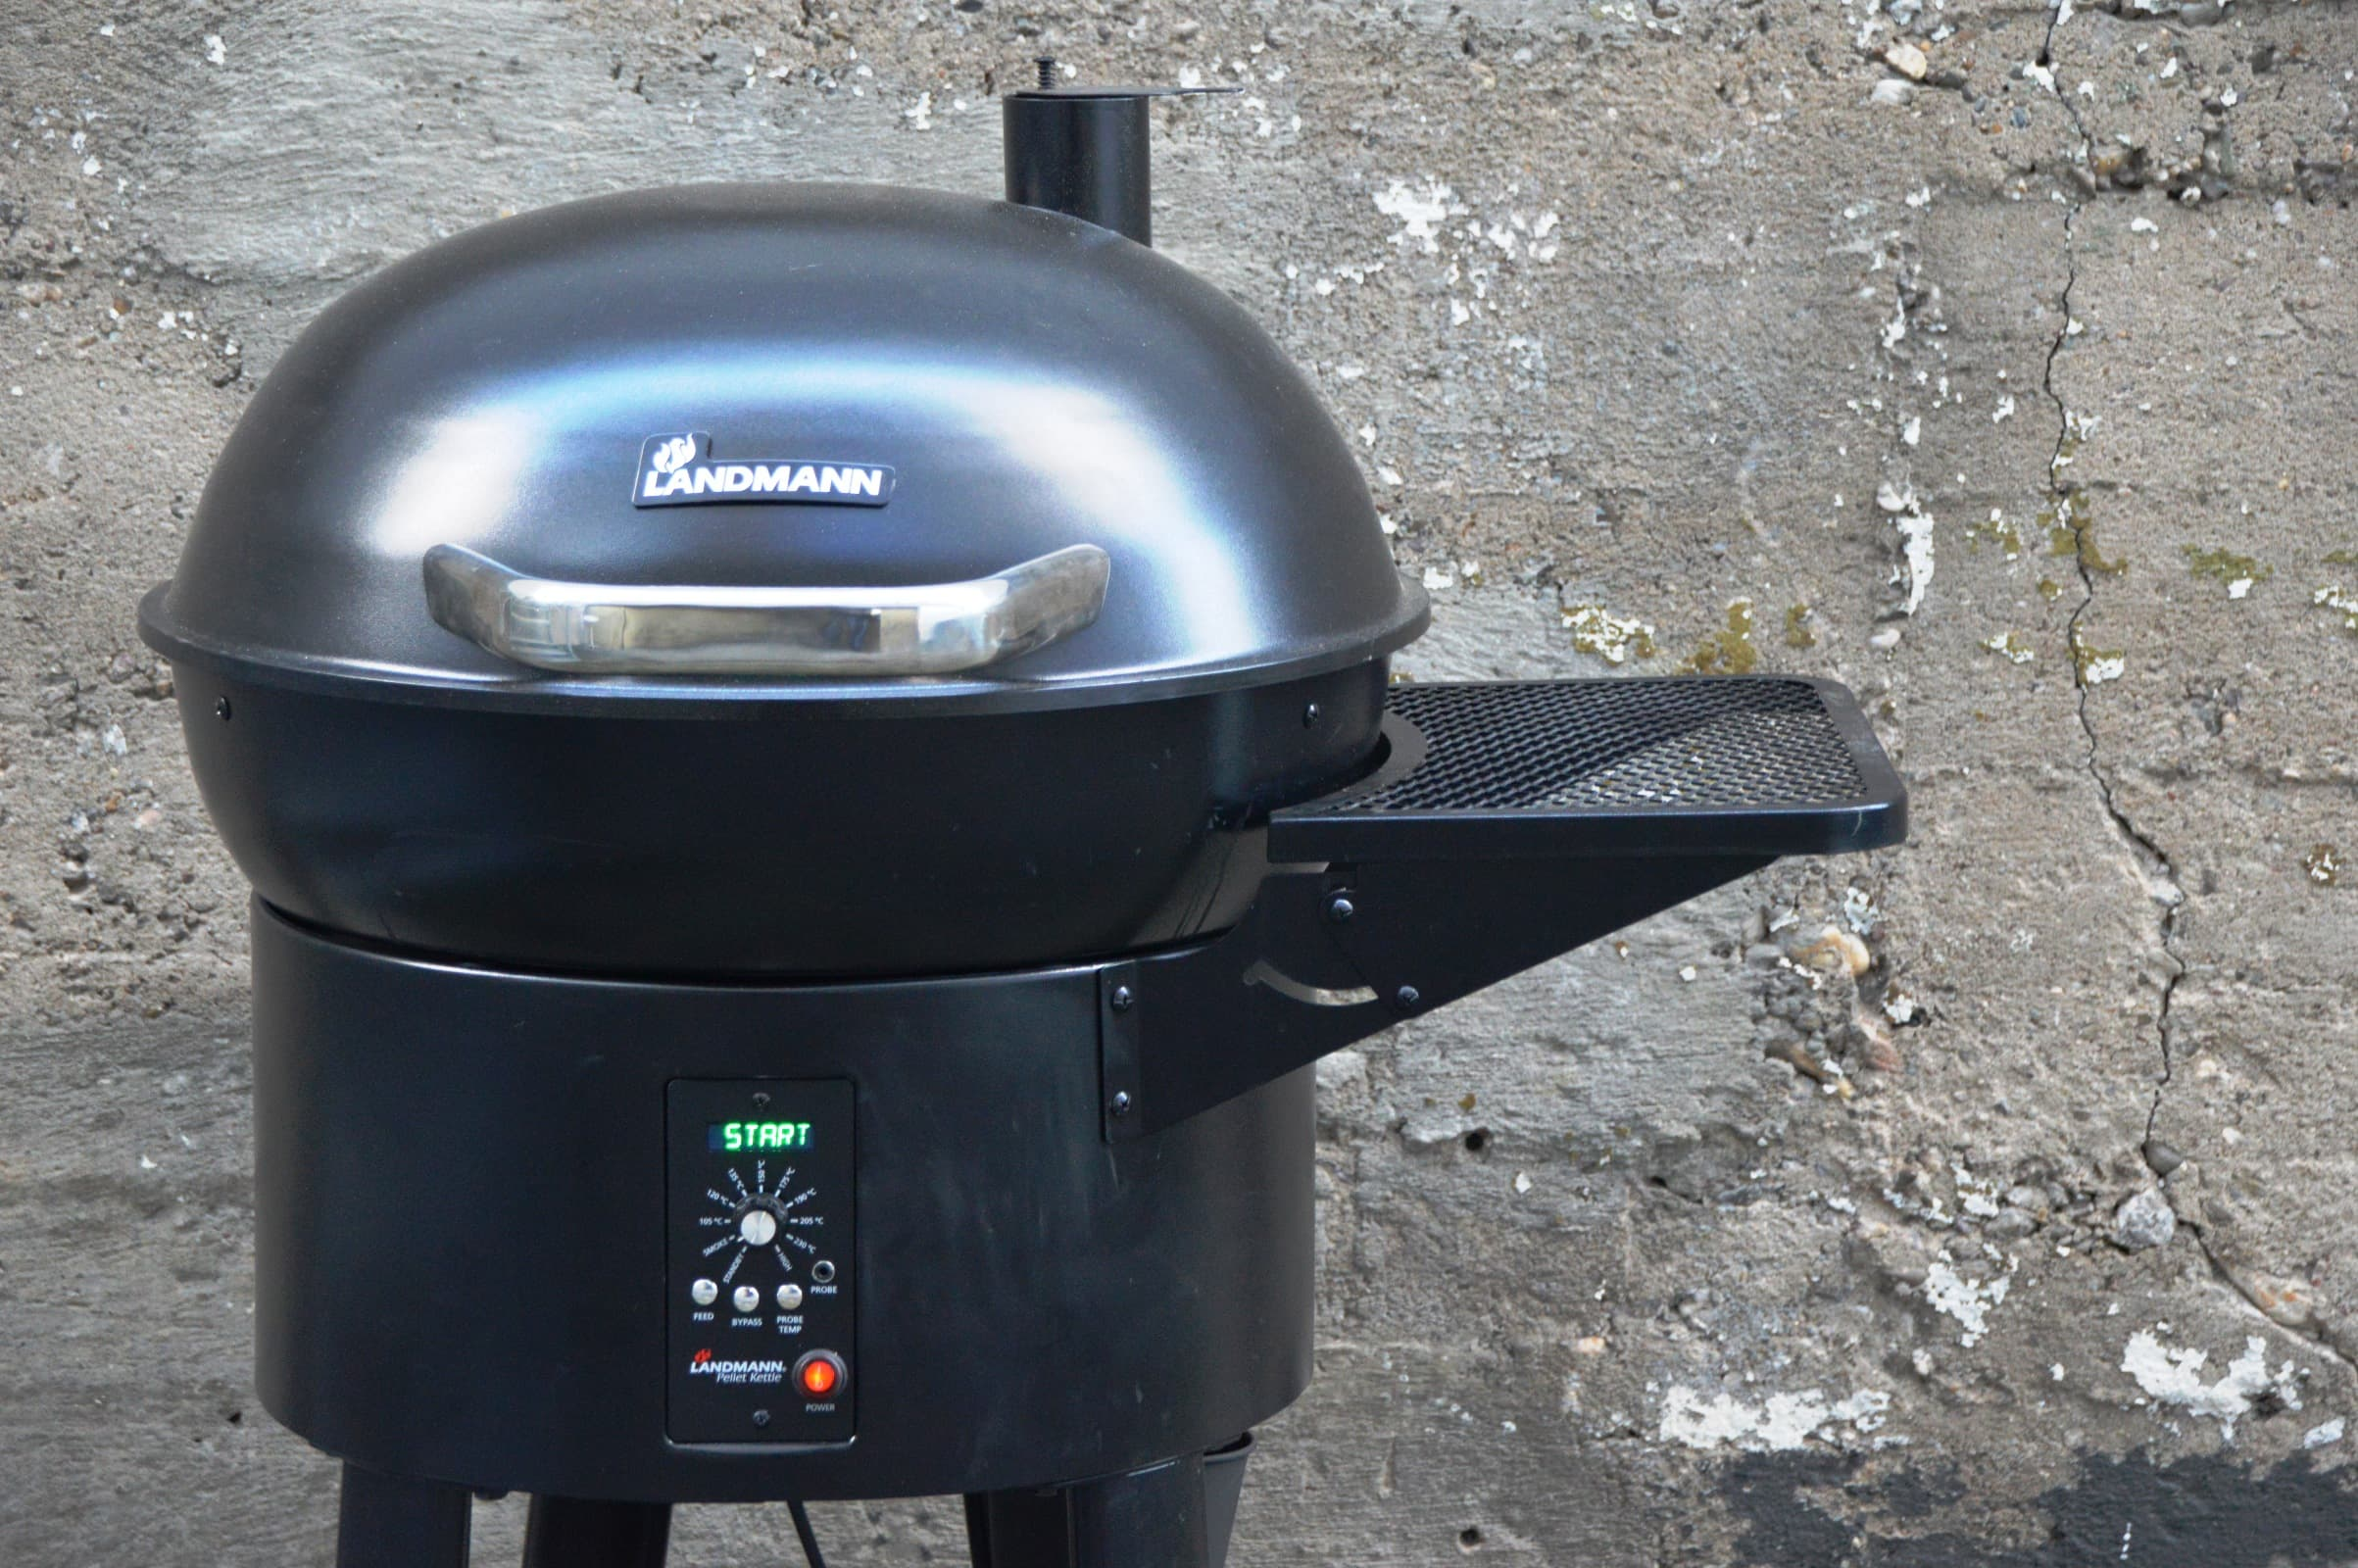 Landmann Gasgrill Hamburg : Angegrillt landmann pellet kettle im test bacon zum steak